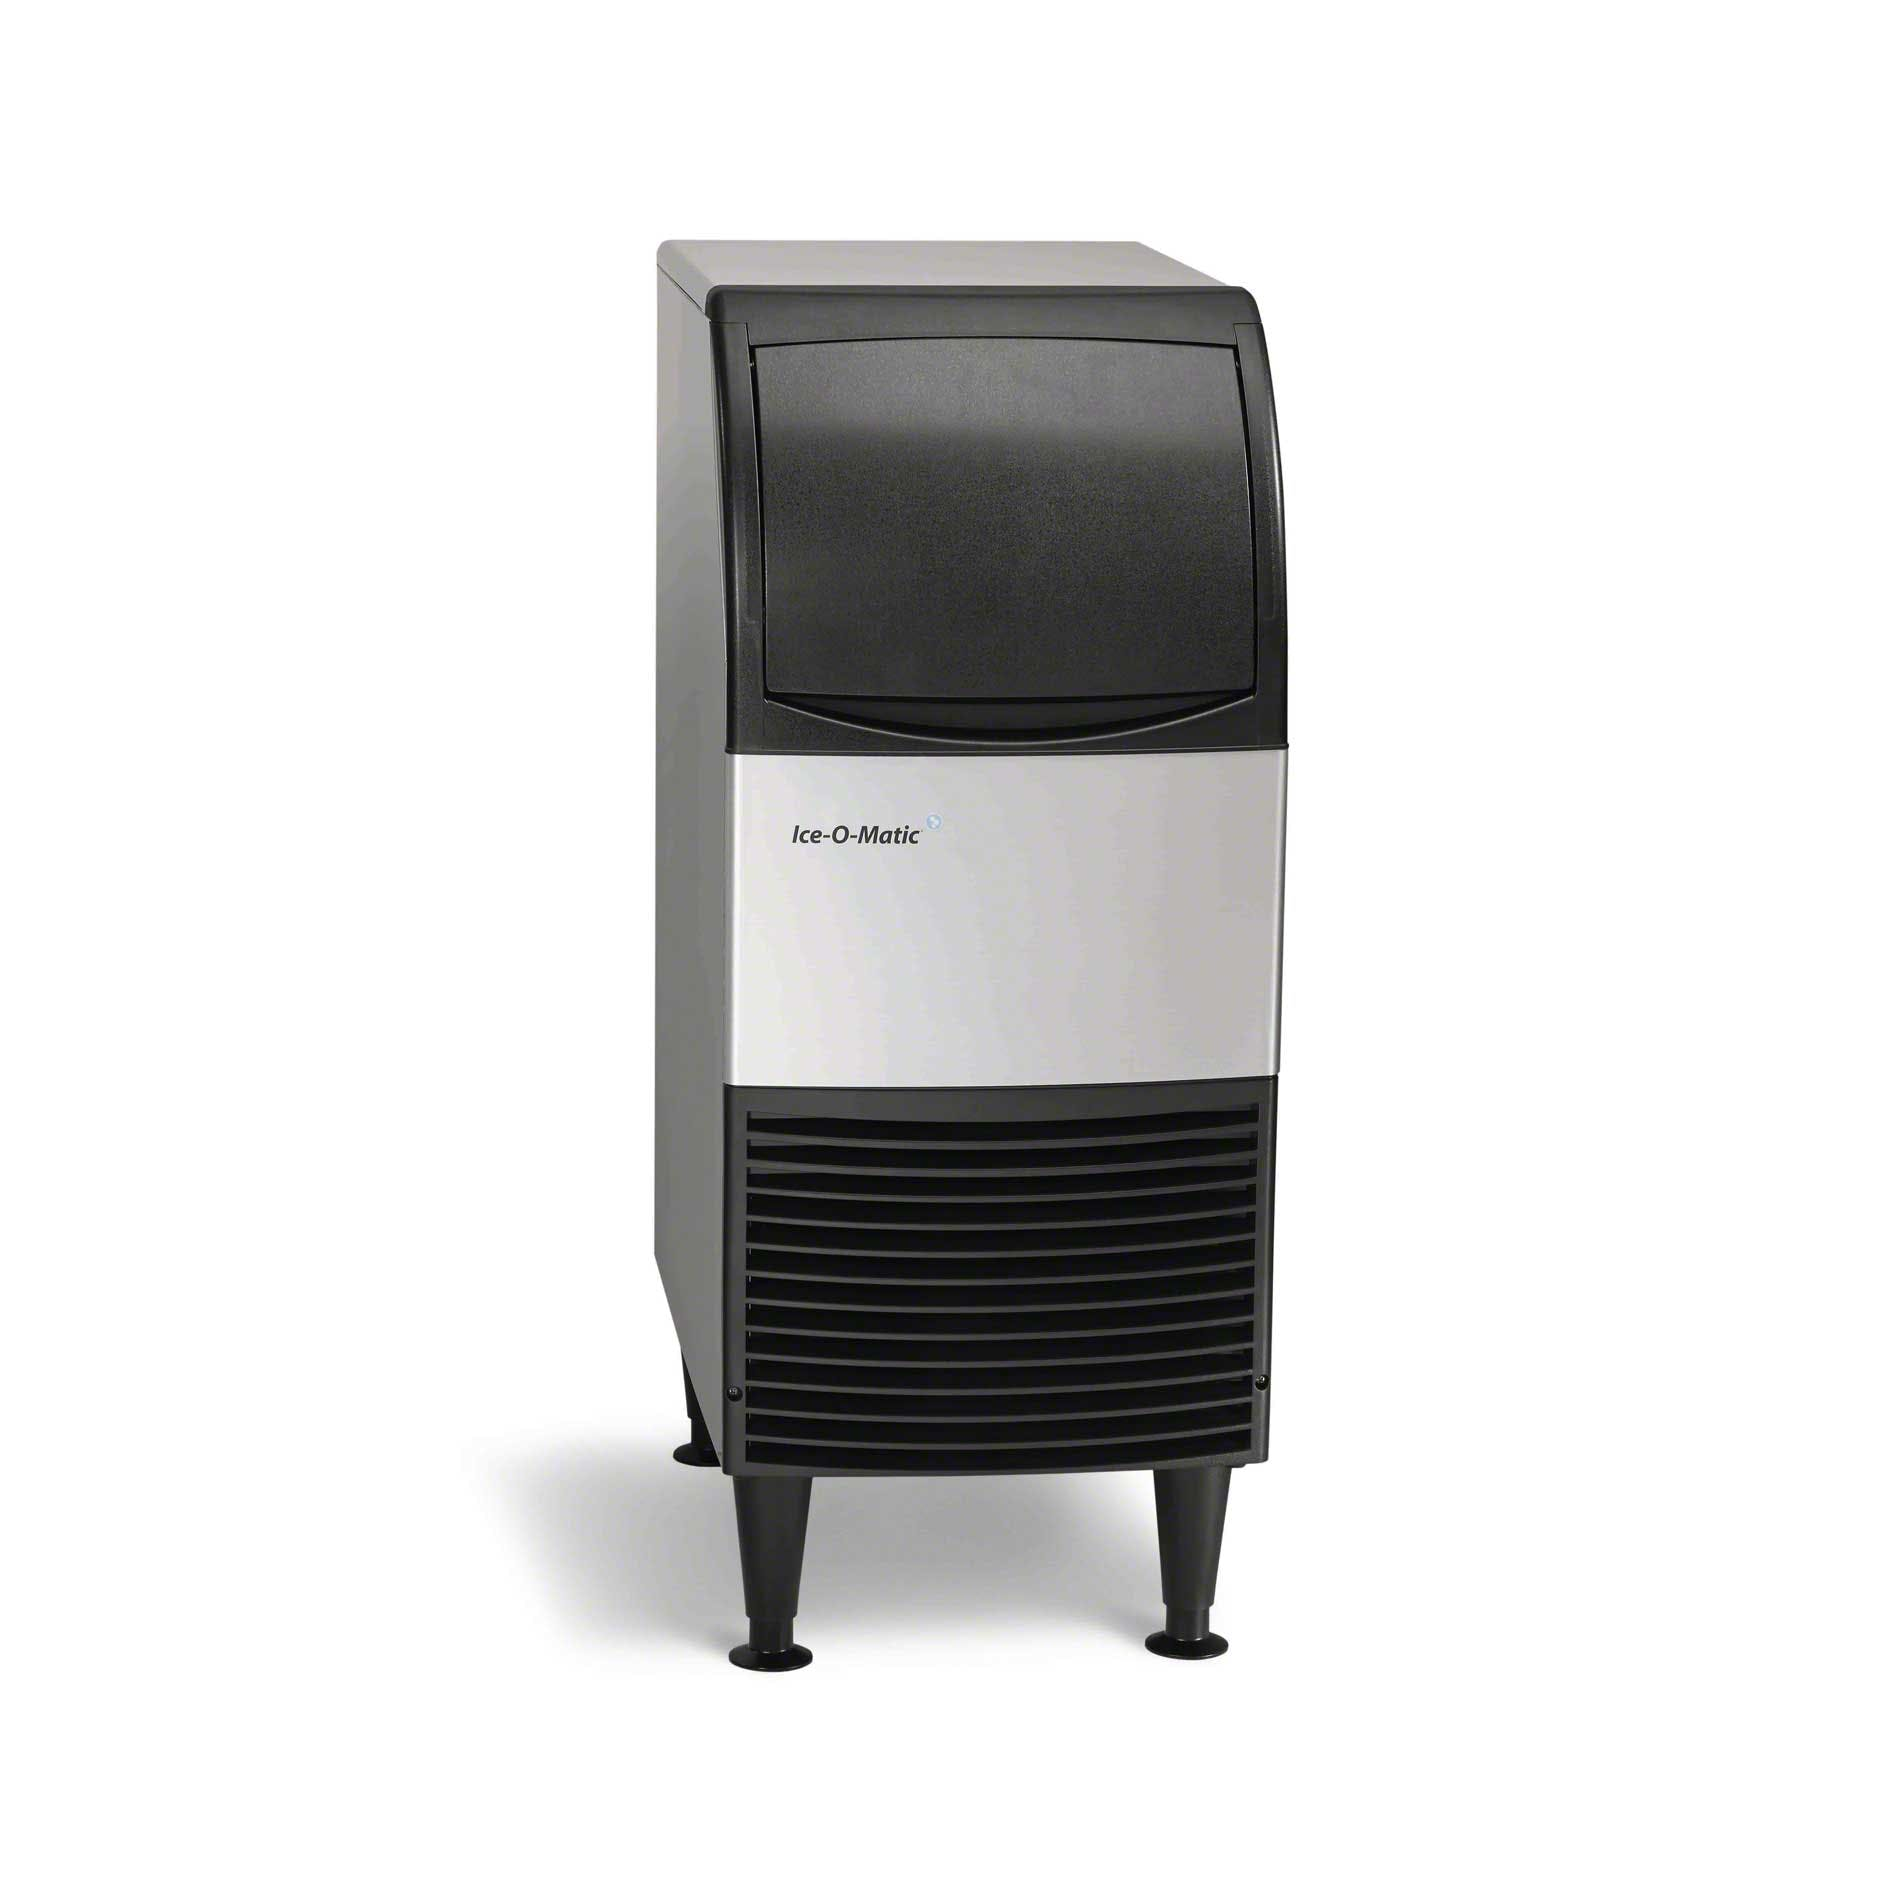 Ice-O-Matic - HISU070 80 lb Self-Contained Cube Ice Maker Ice machine sold by Food Service Warehouse